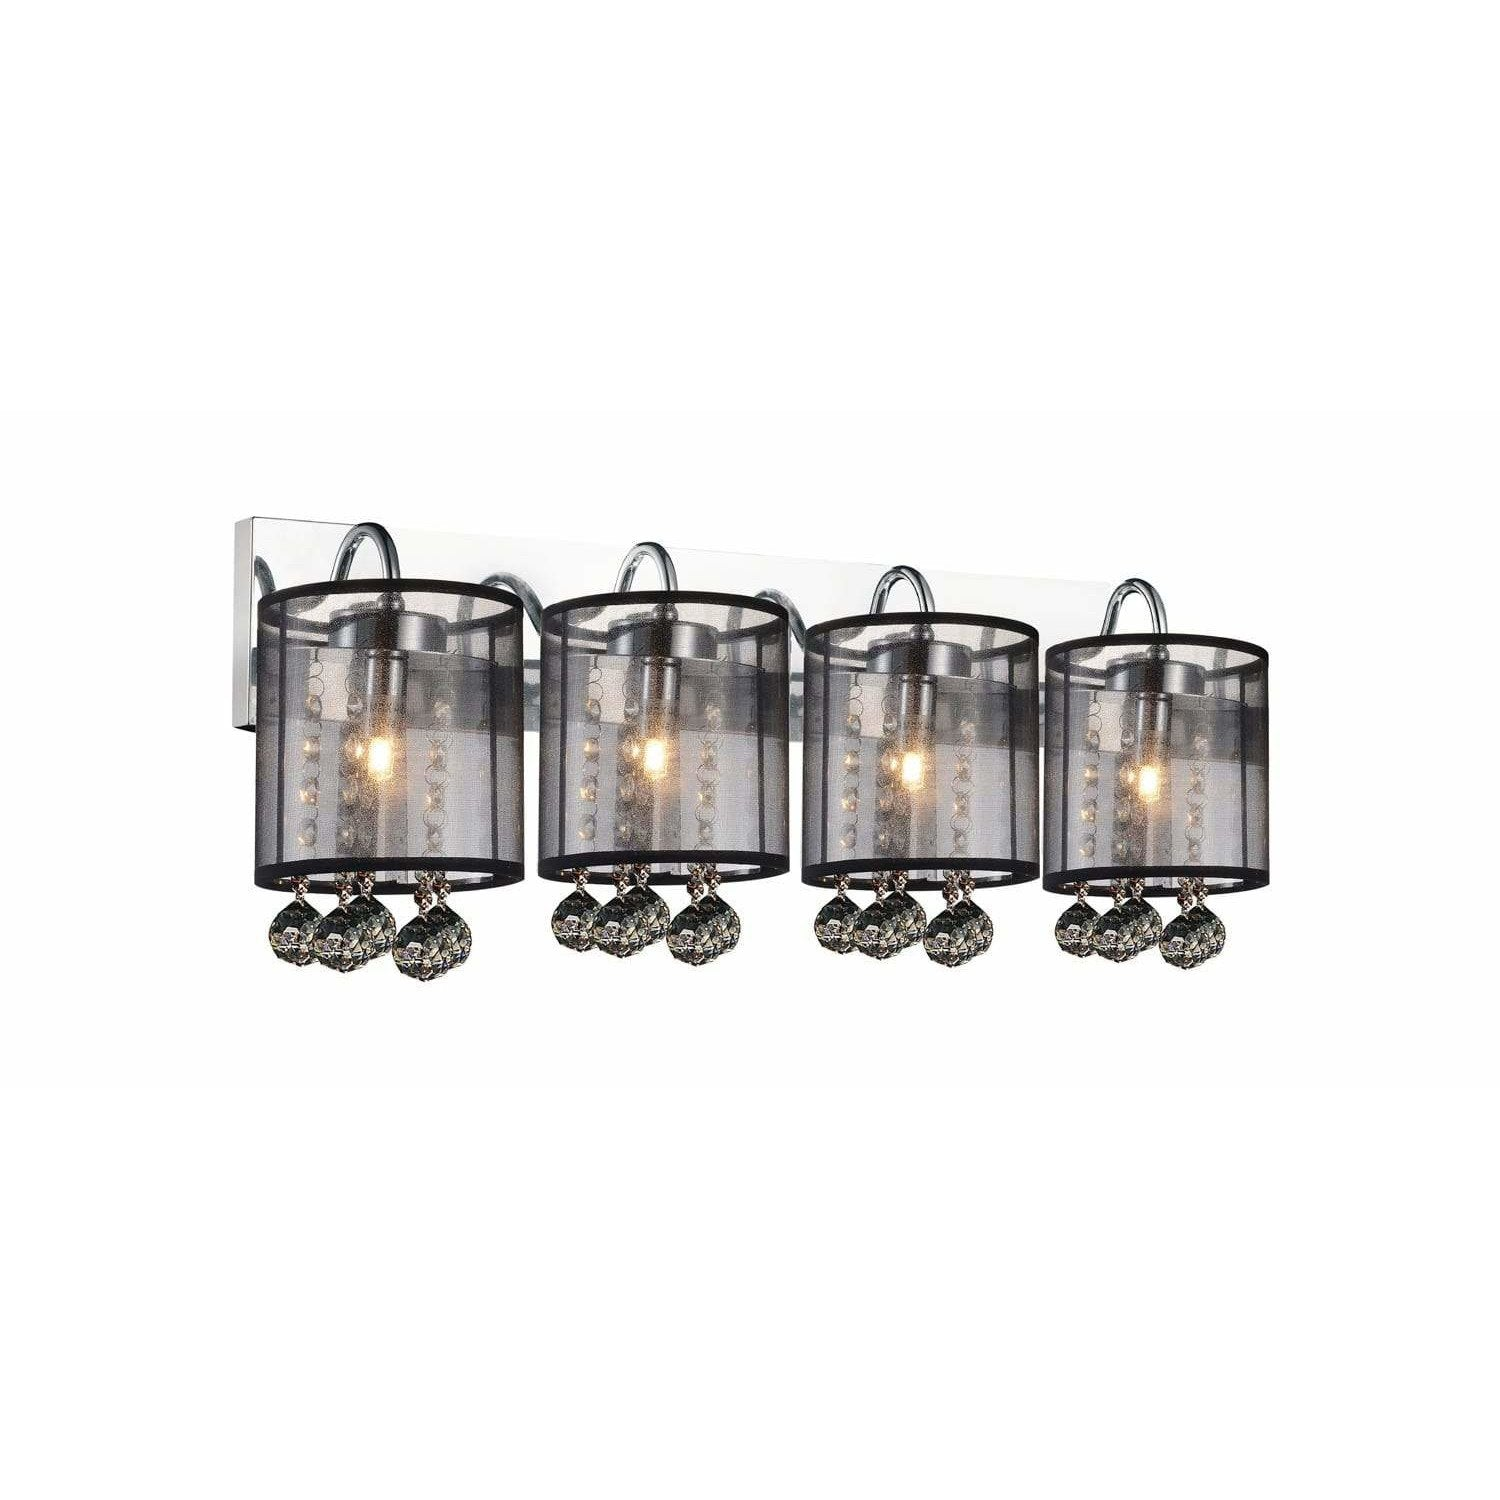 CWI Lighting Bathroom Lighting Chrome / K9 Smoke Radiant 4 Light Vanity Light with Chrome finish by CWI Lighting 5062W24C-4 (Smoke + B)